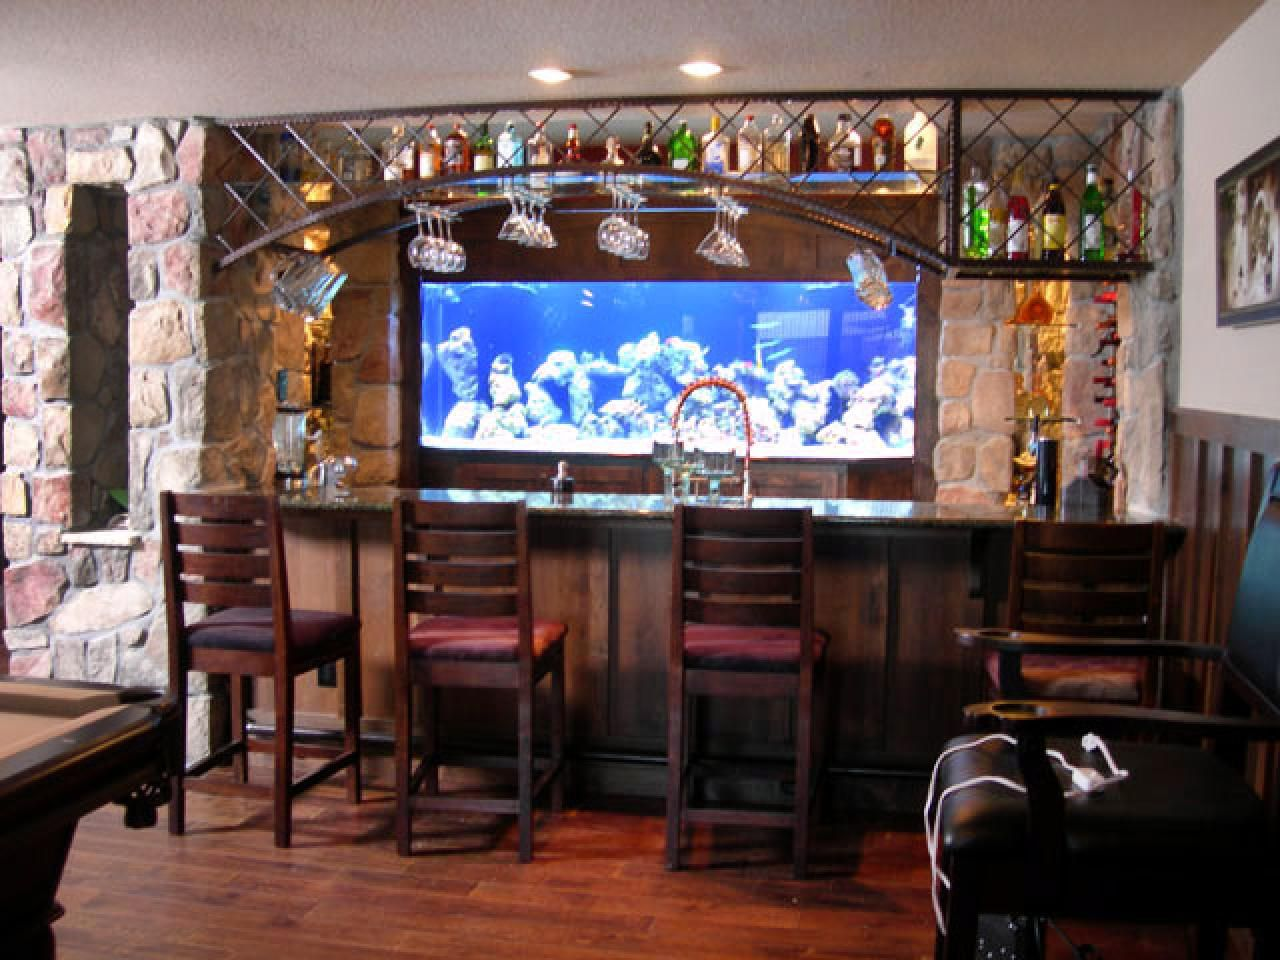 Home bar ideas 89 design options hgtv kitchen design and layouts Home bar layout and design ideas